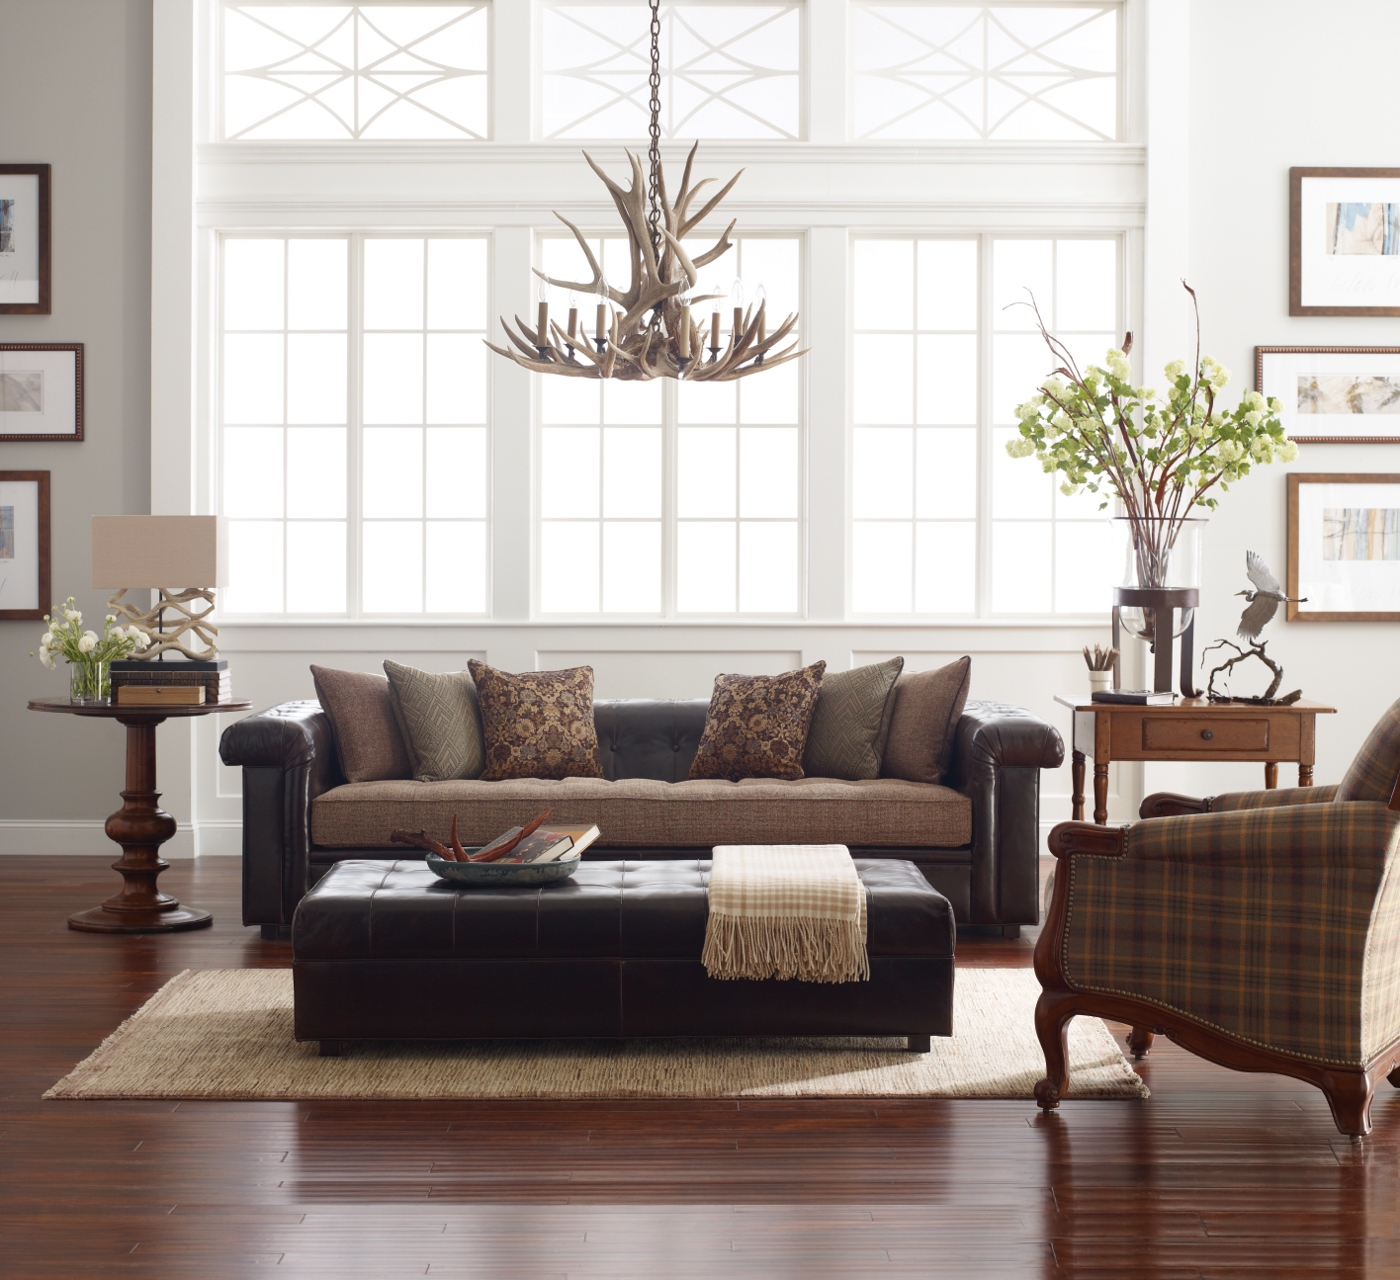 living room furniture - reid's fine furnishings